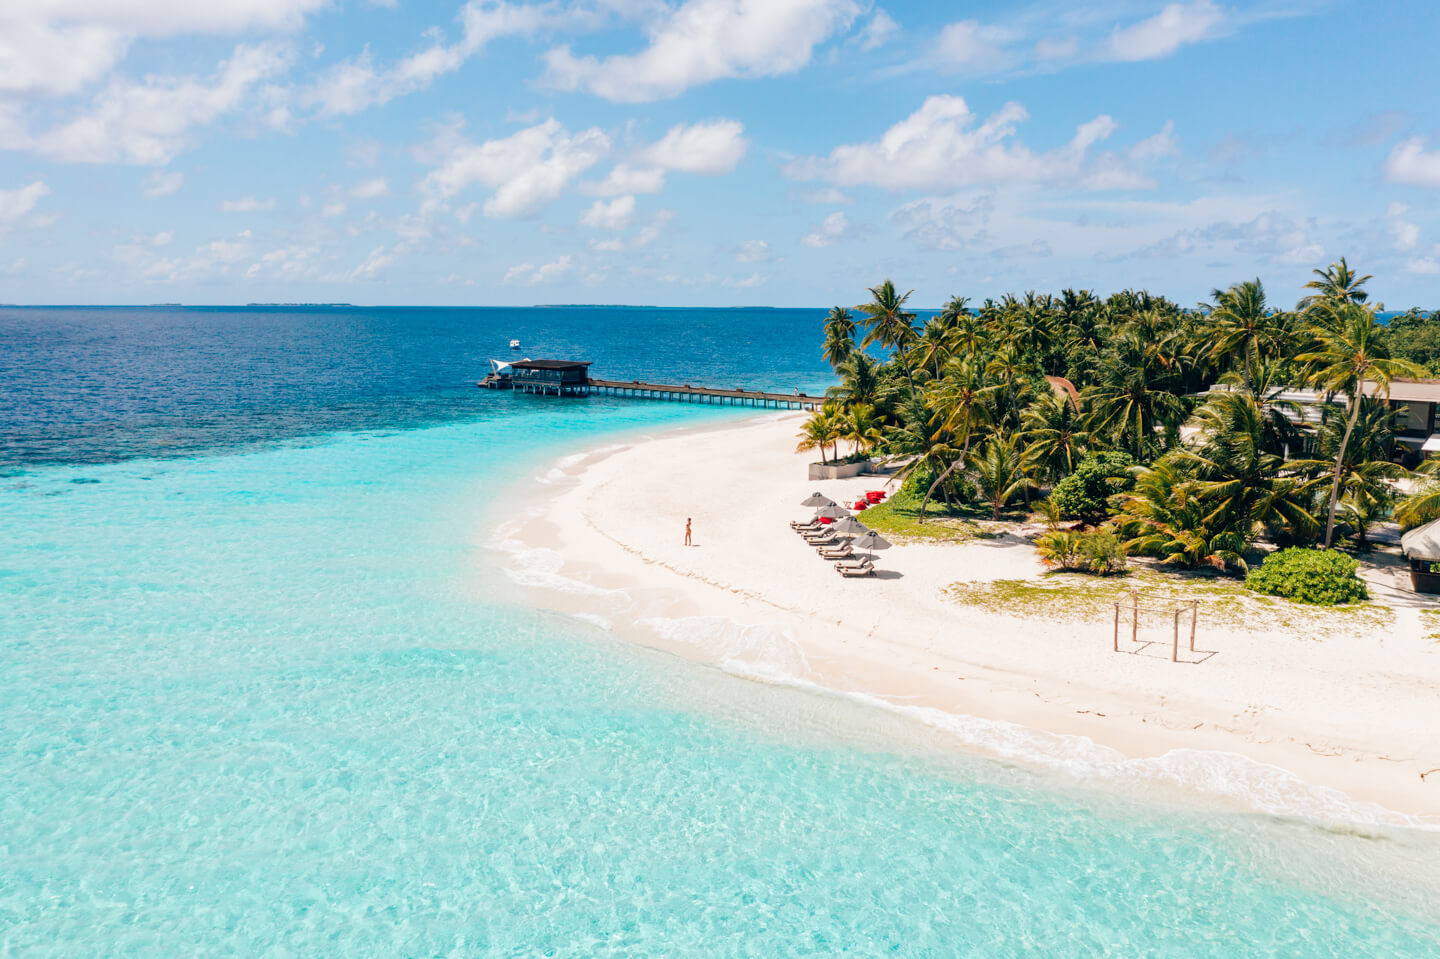 maldoves drone shot with a blue lagoon, white sandy beach and many palm trees